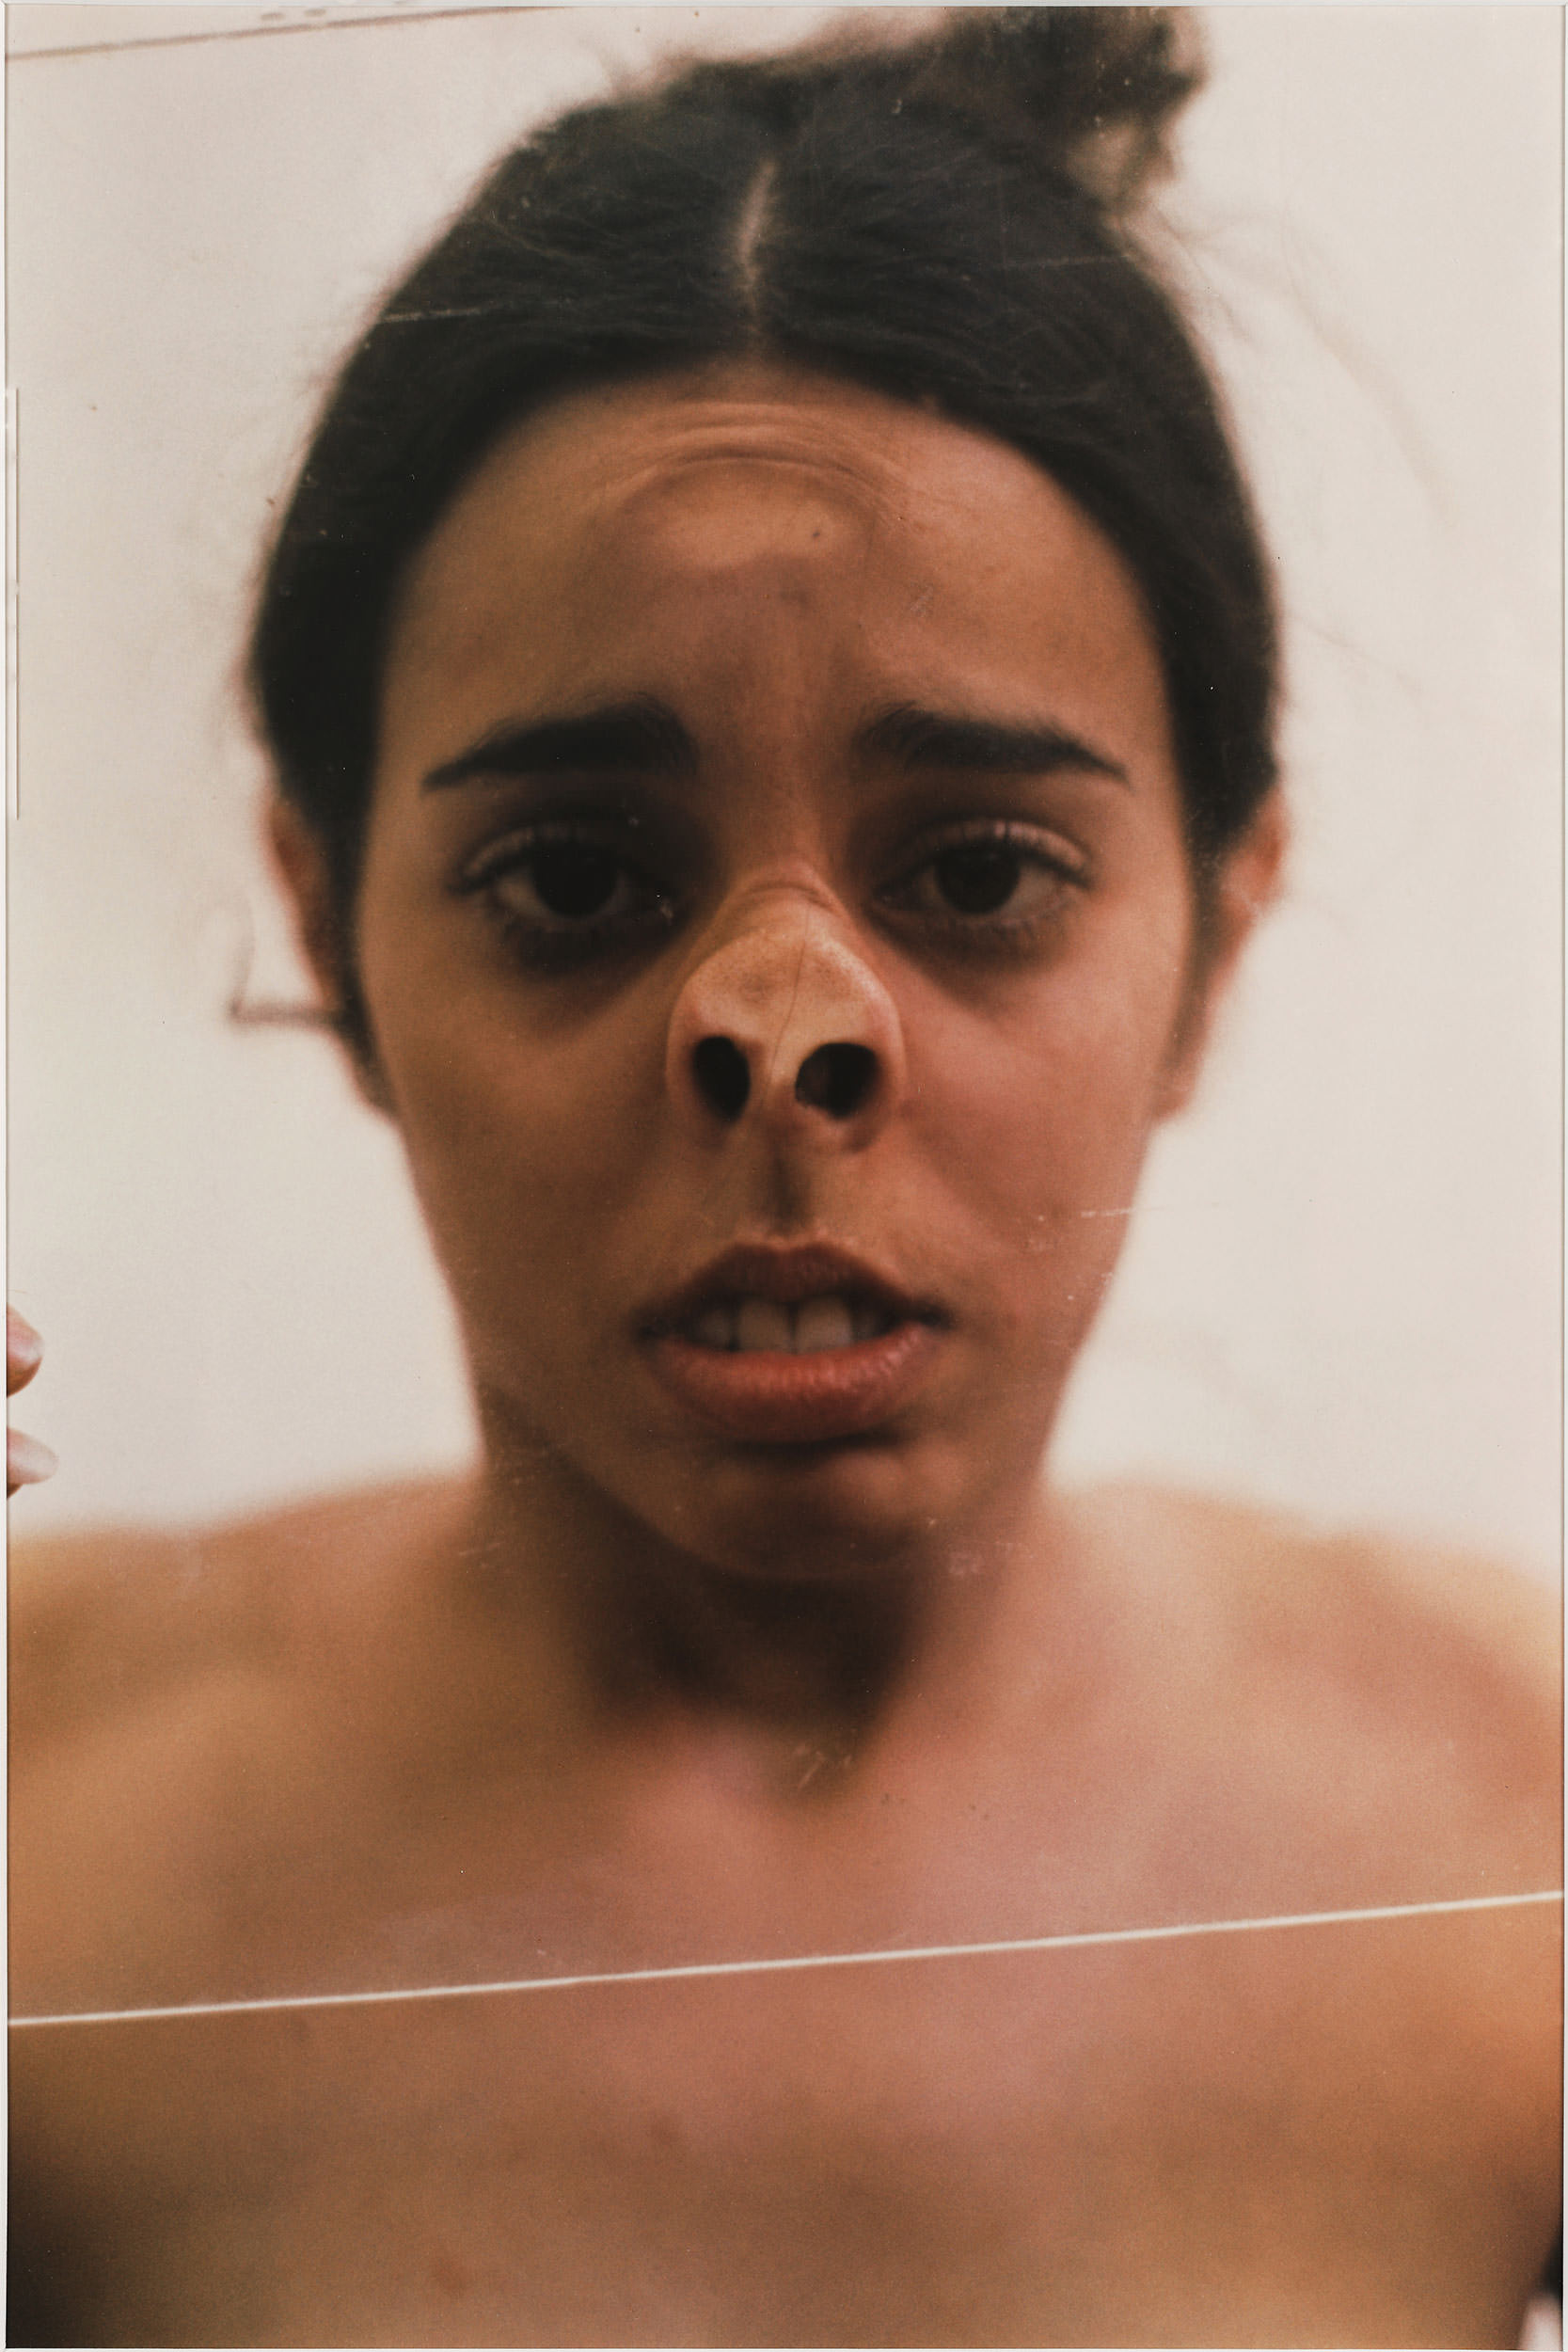 6 Ana Mendieta, Untitled (Glass on Face), 1972.